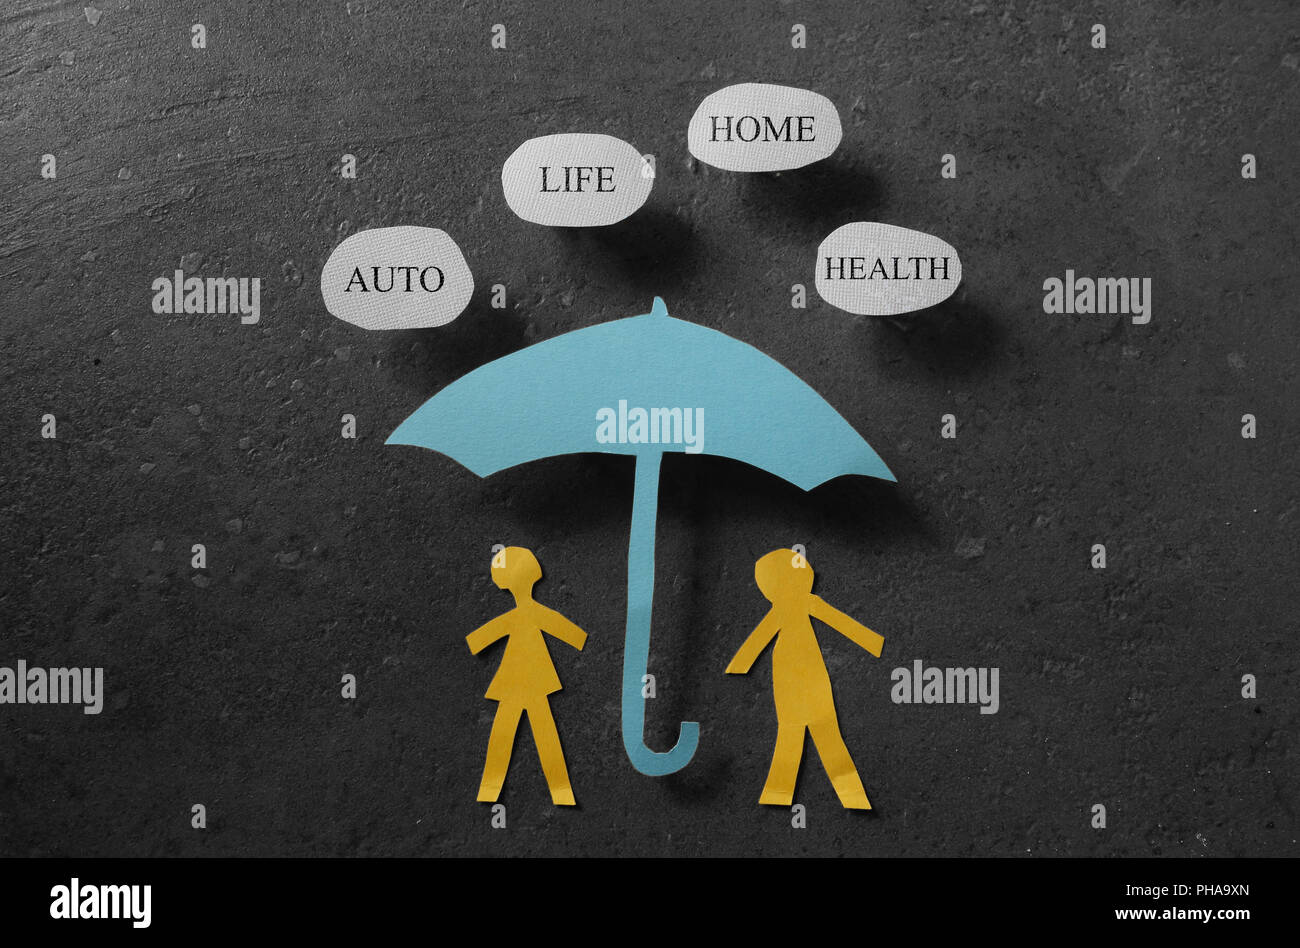 Insurance coverage concept - Stock Image